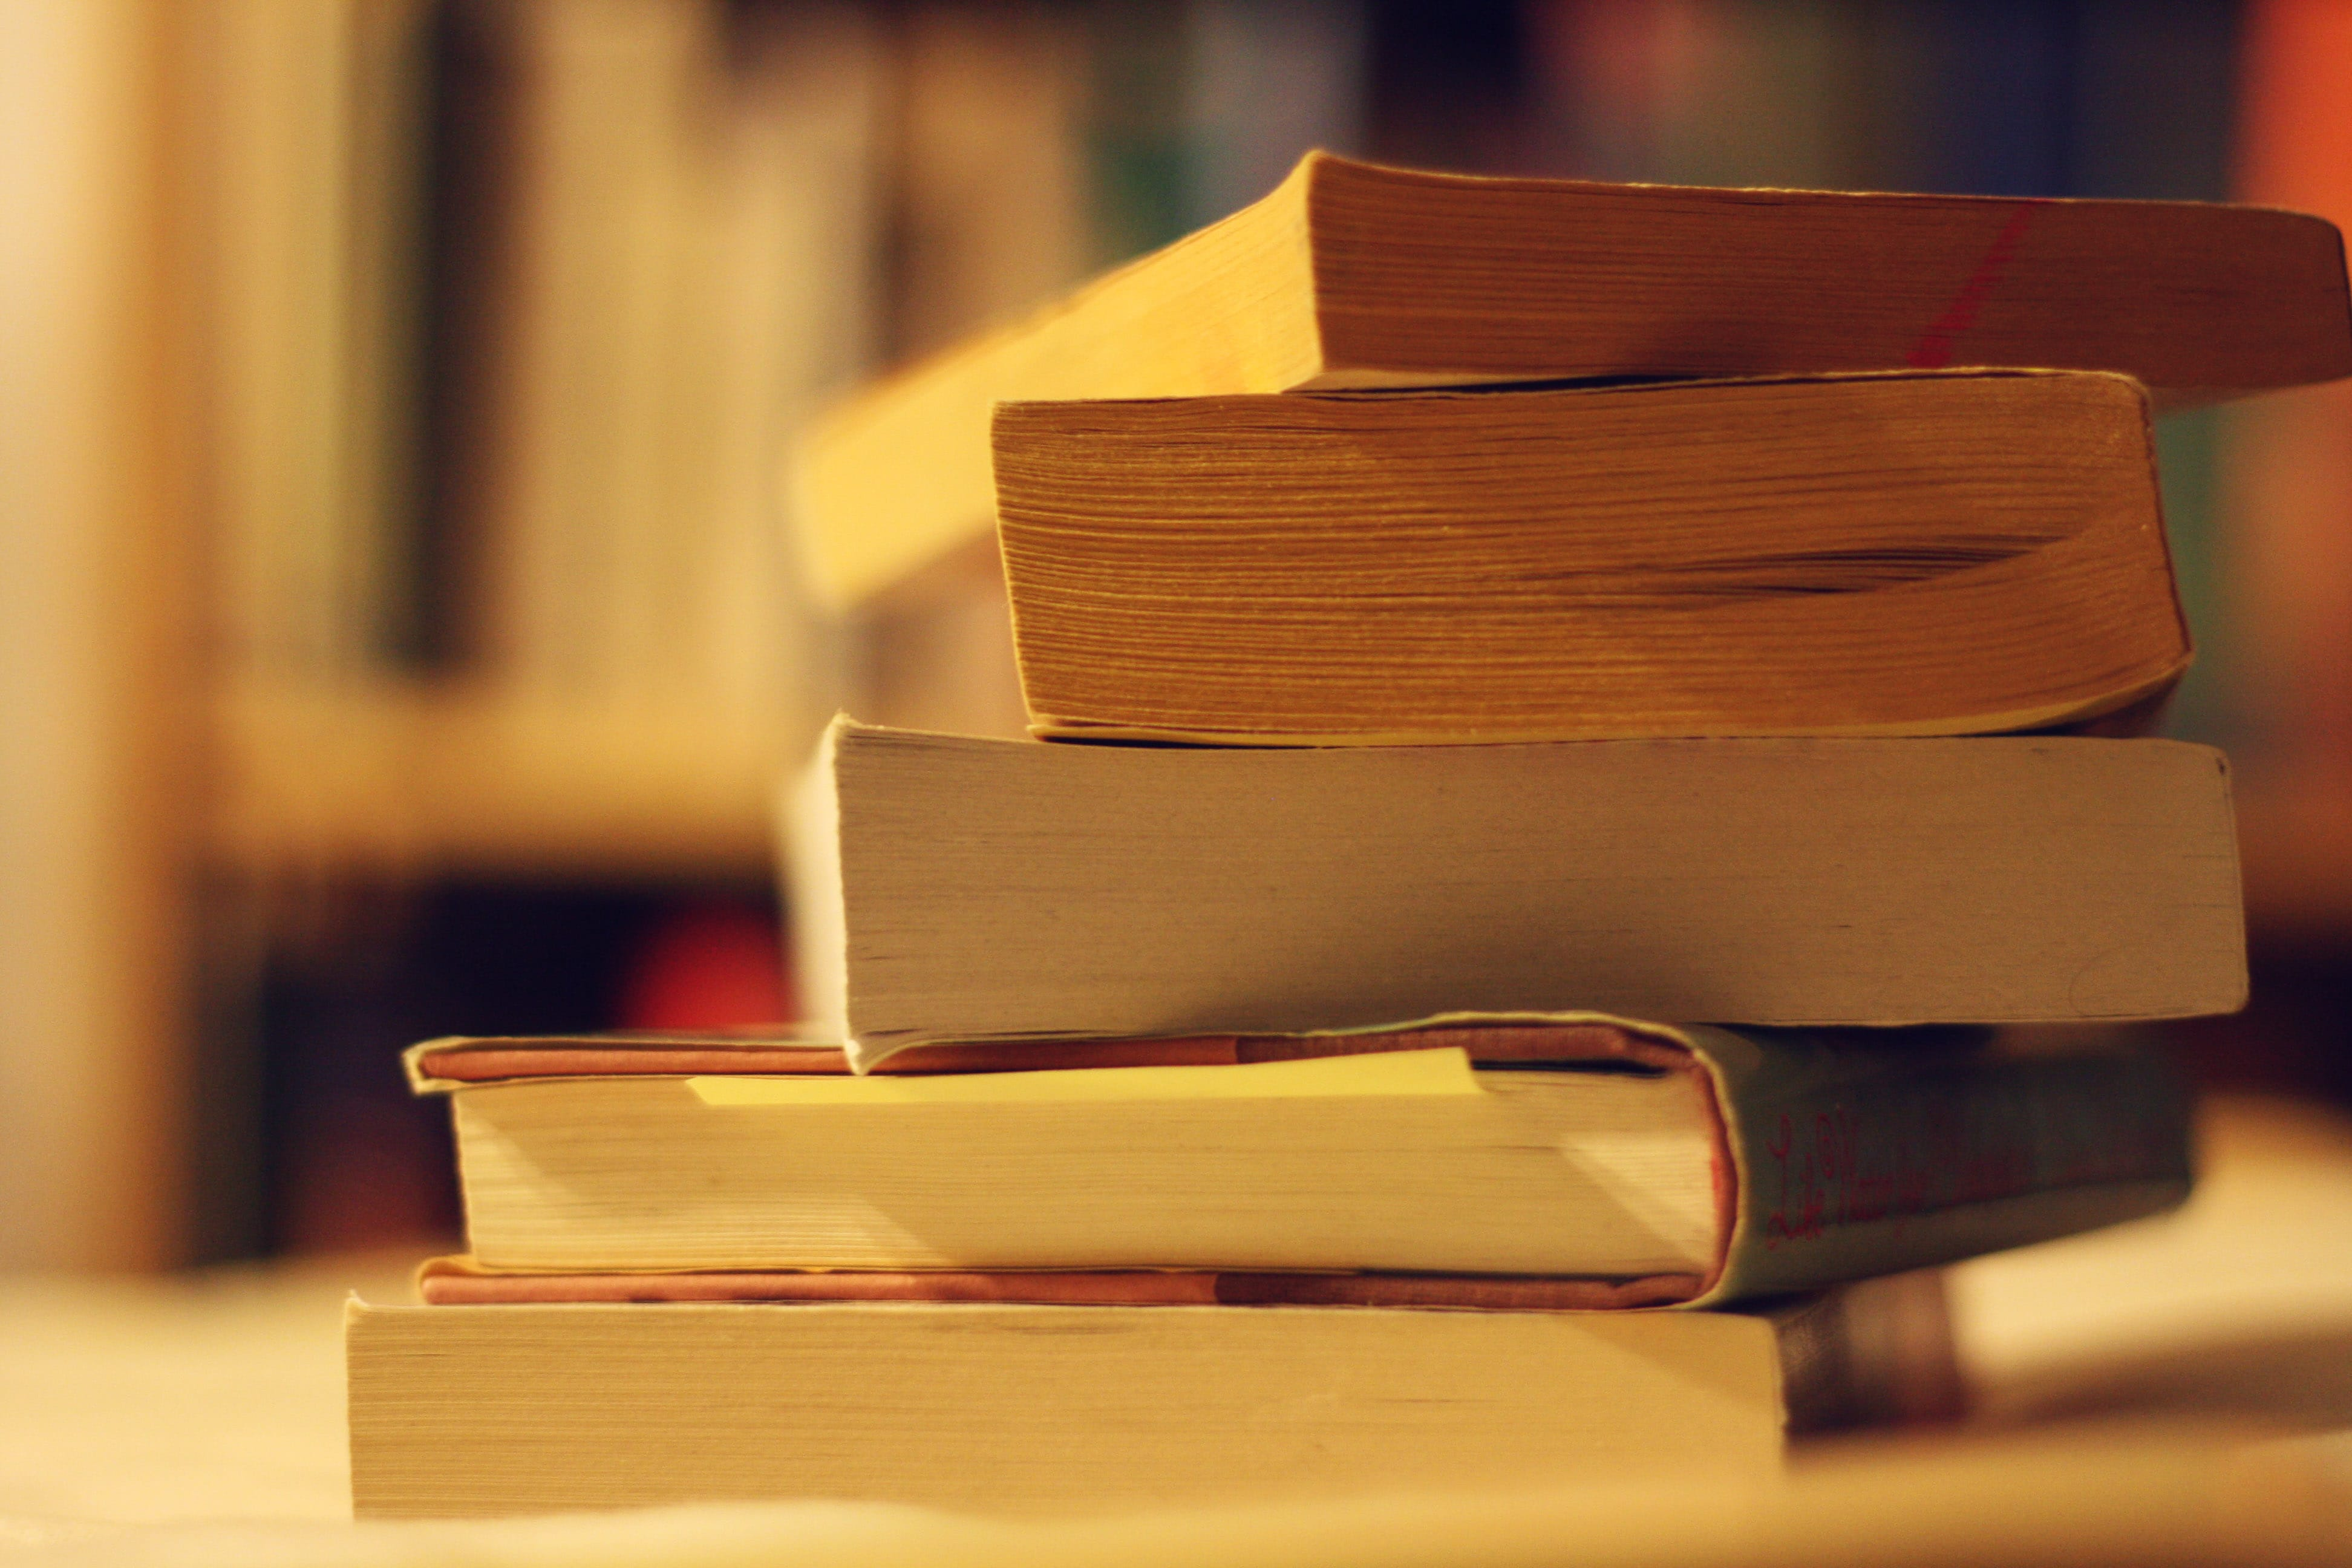 5 Great Books for New UX-ers